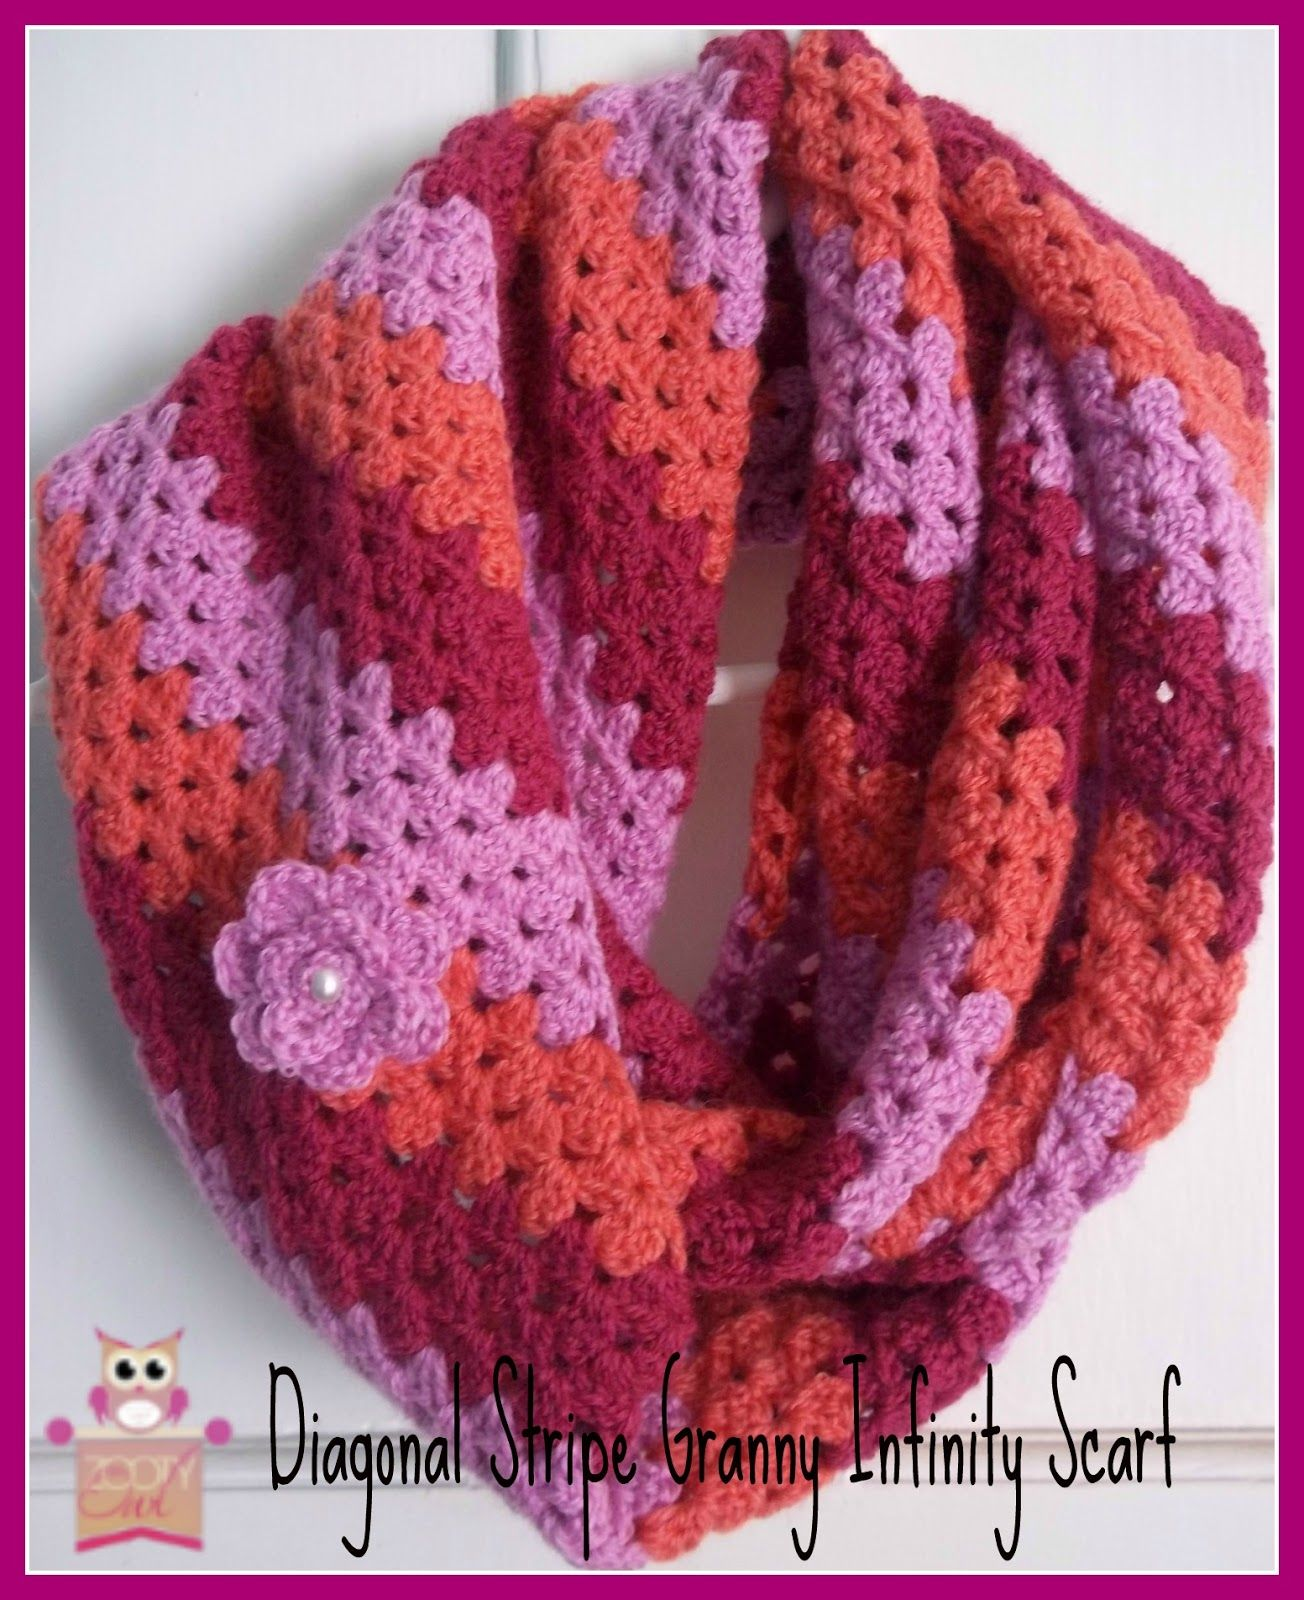 Crochet Infinity Scarf - diagonal granny pattern. | Crochet clothes ...